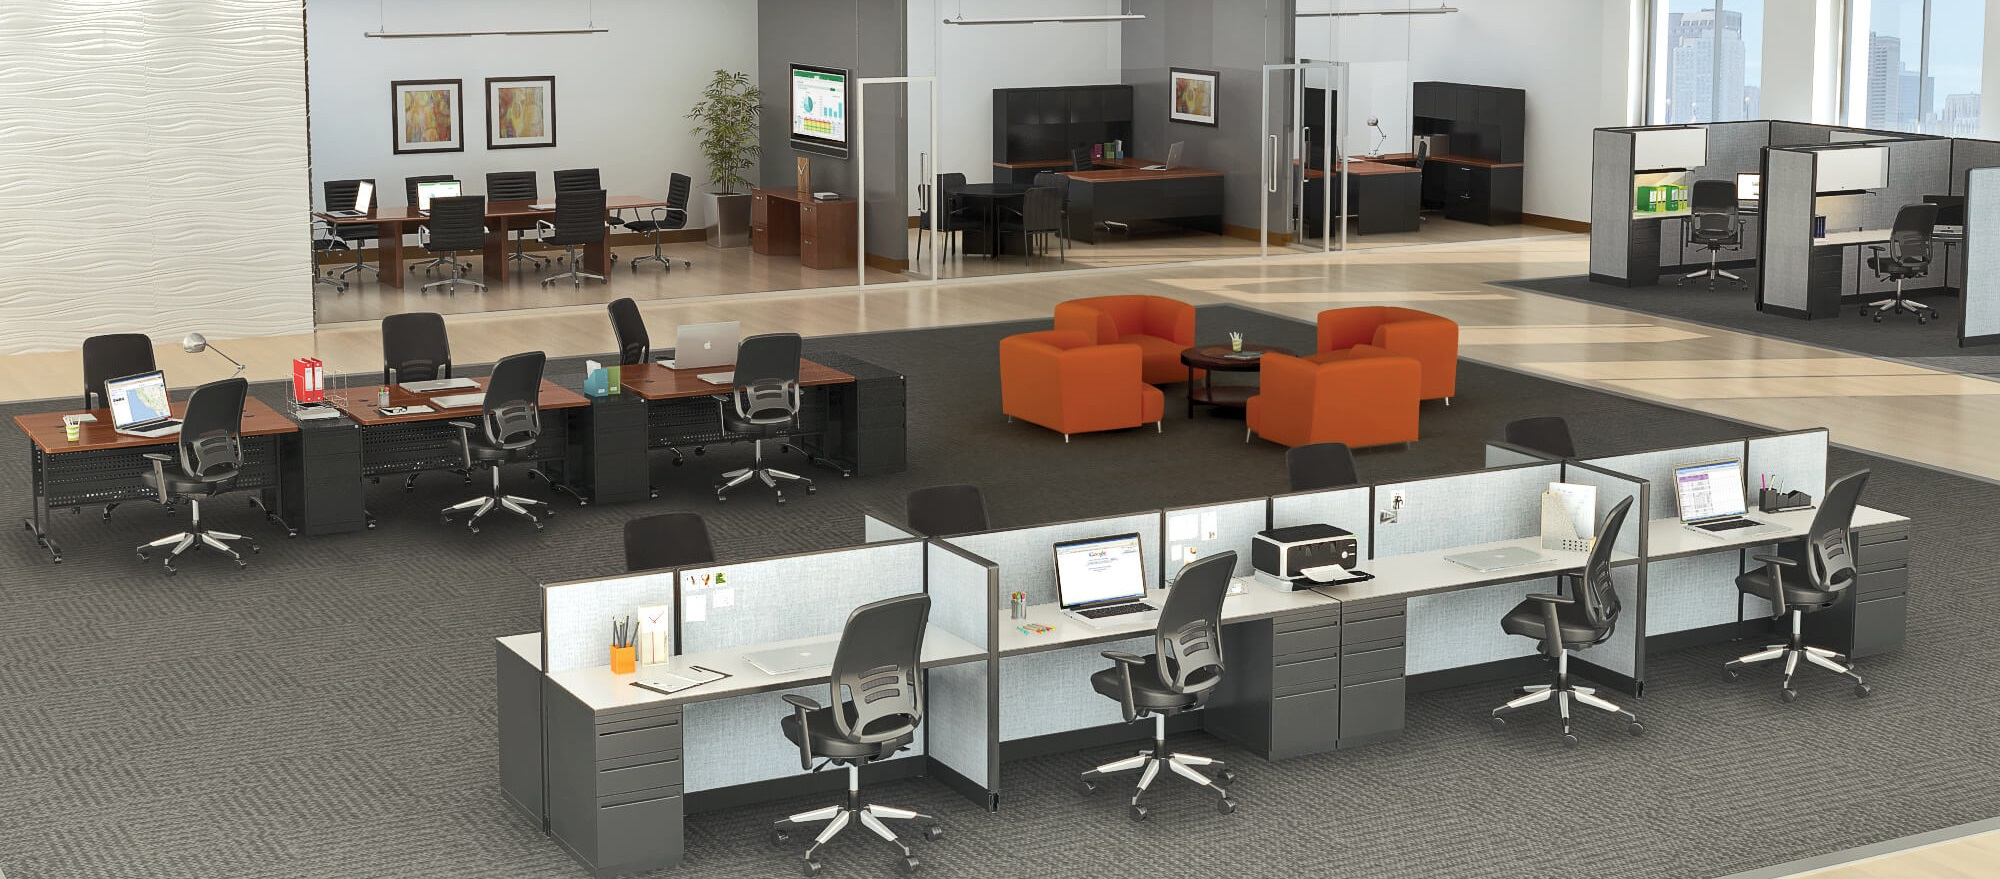 80 Office Furniture Rental Memphis Tn Kemmons